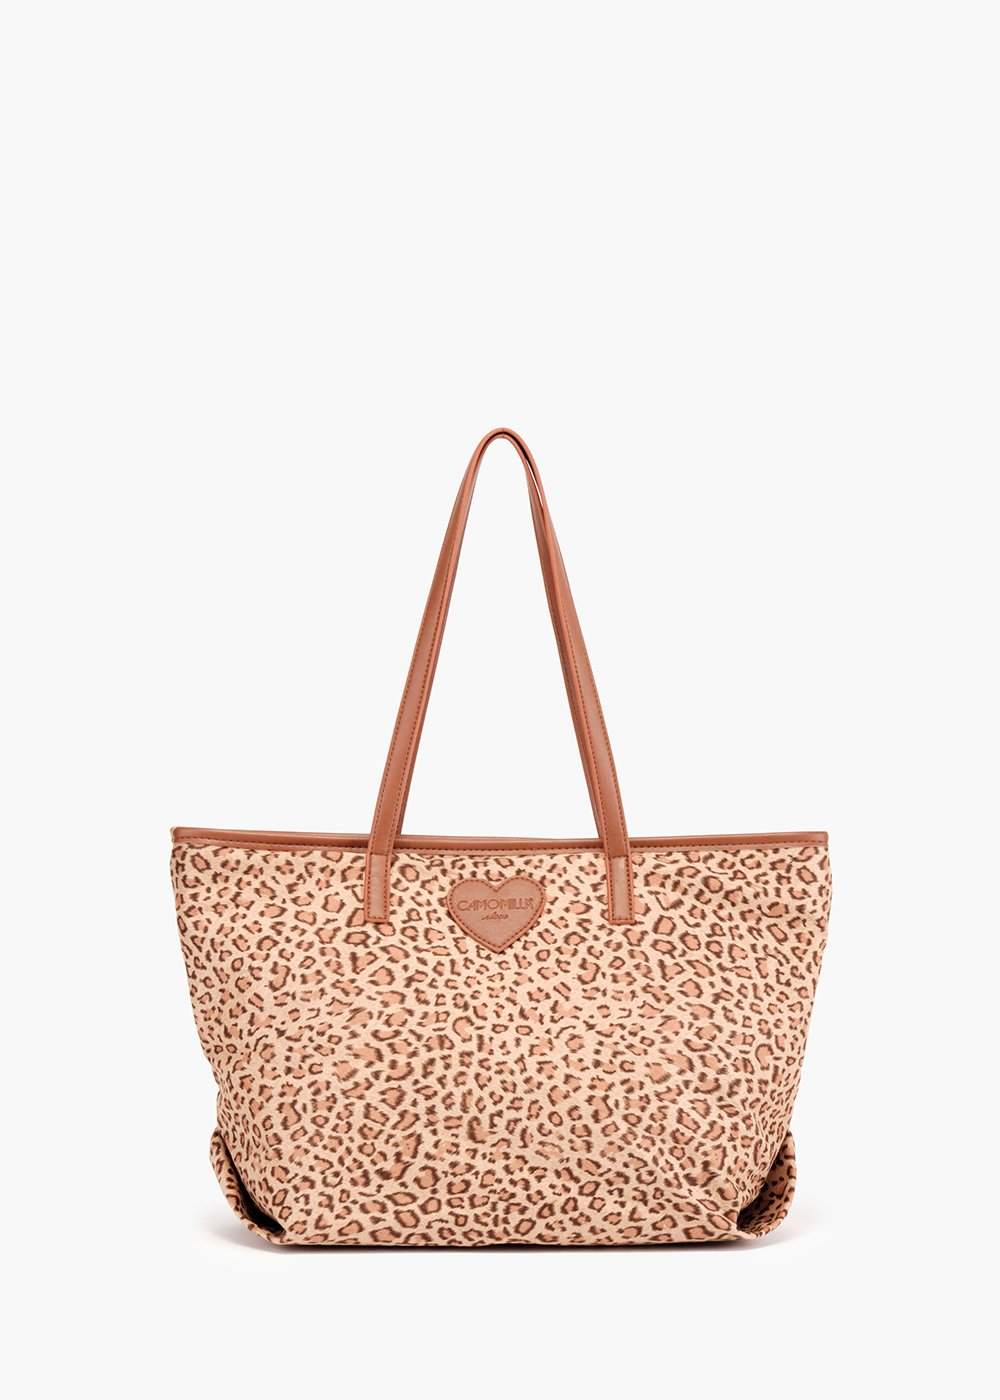 Bodel shopping bag with animal print and eco leather details